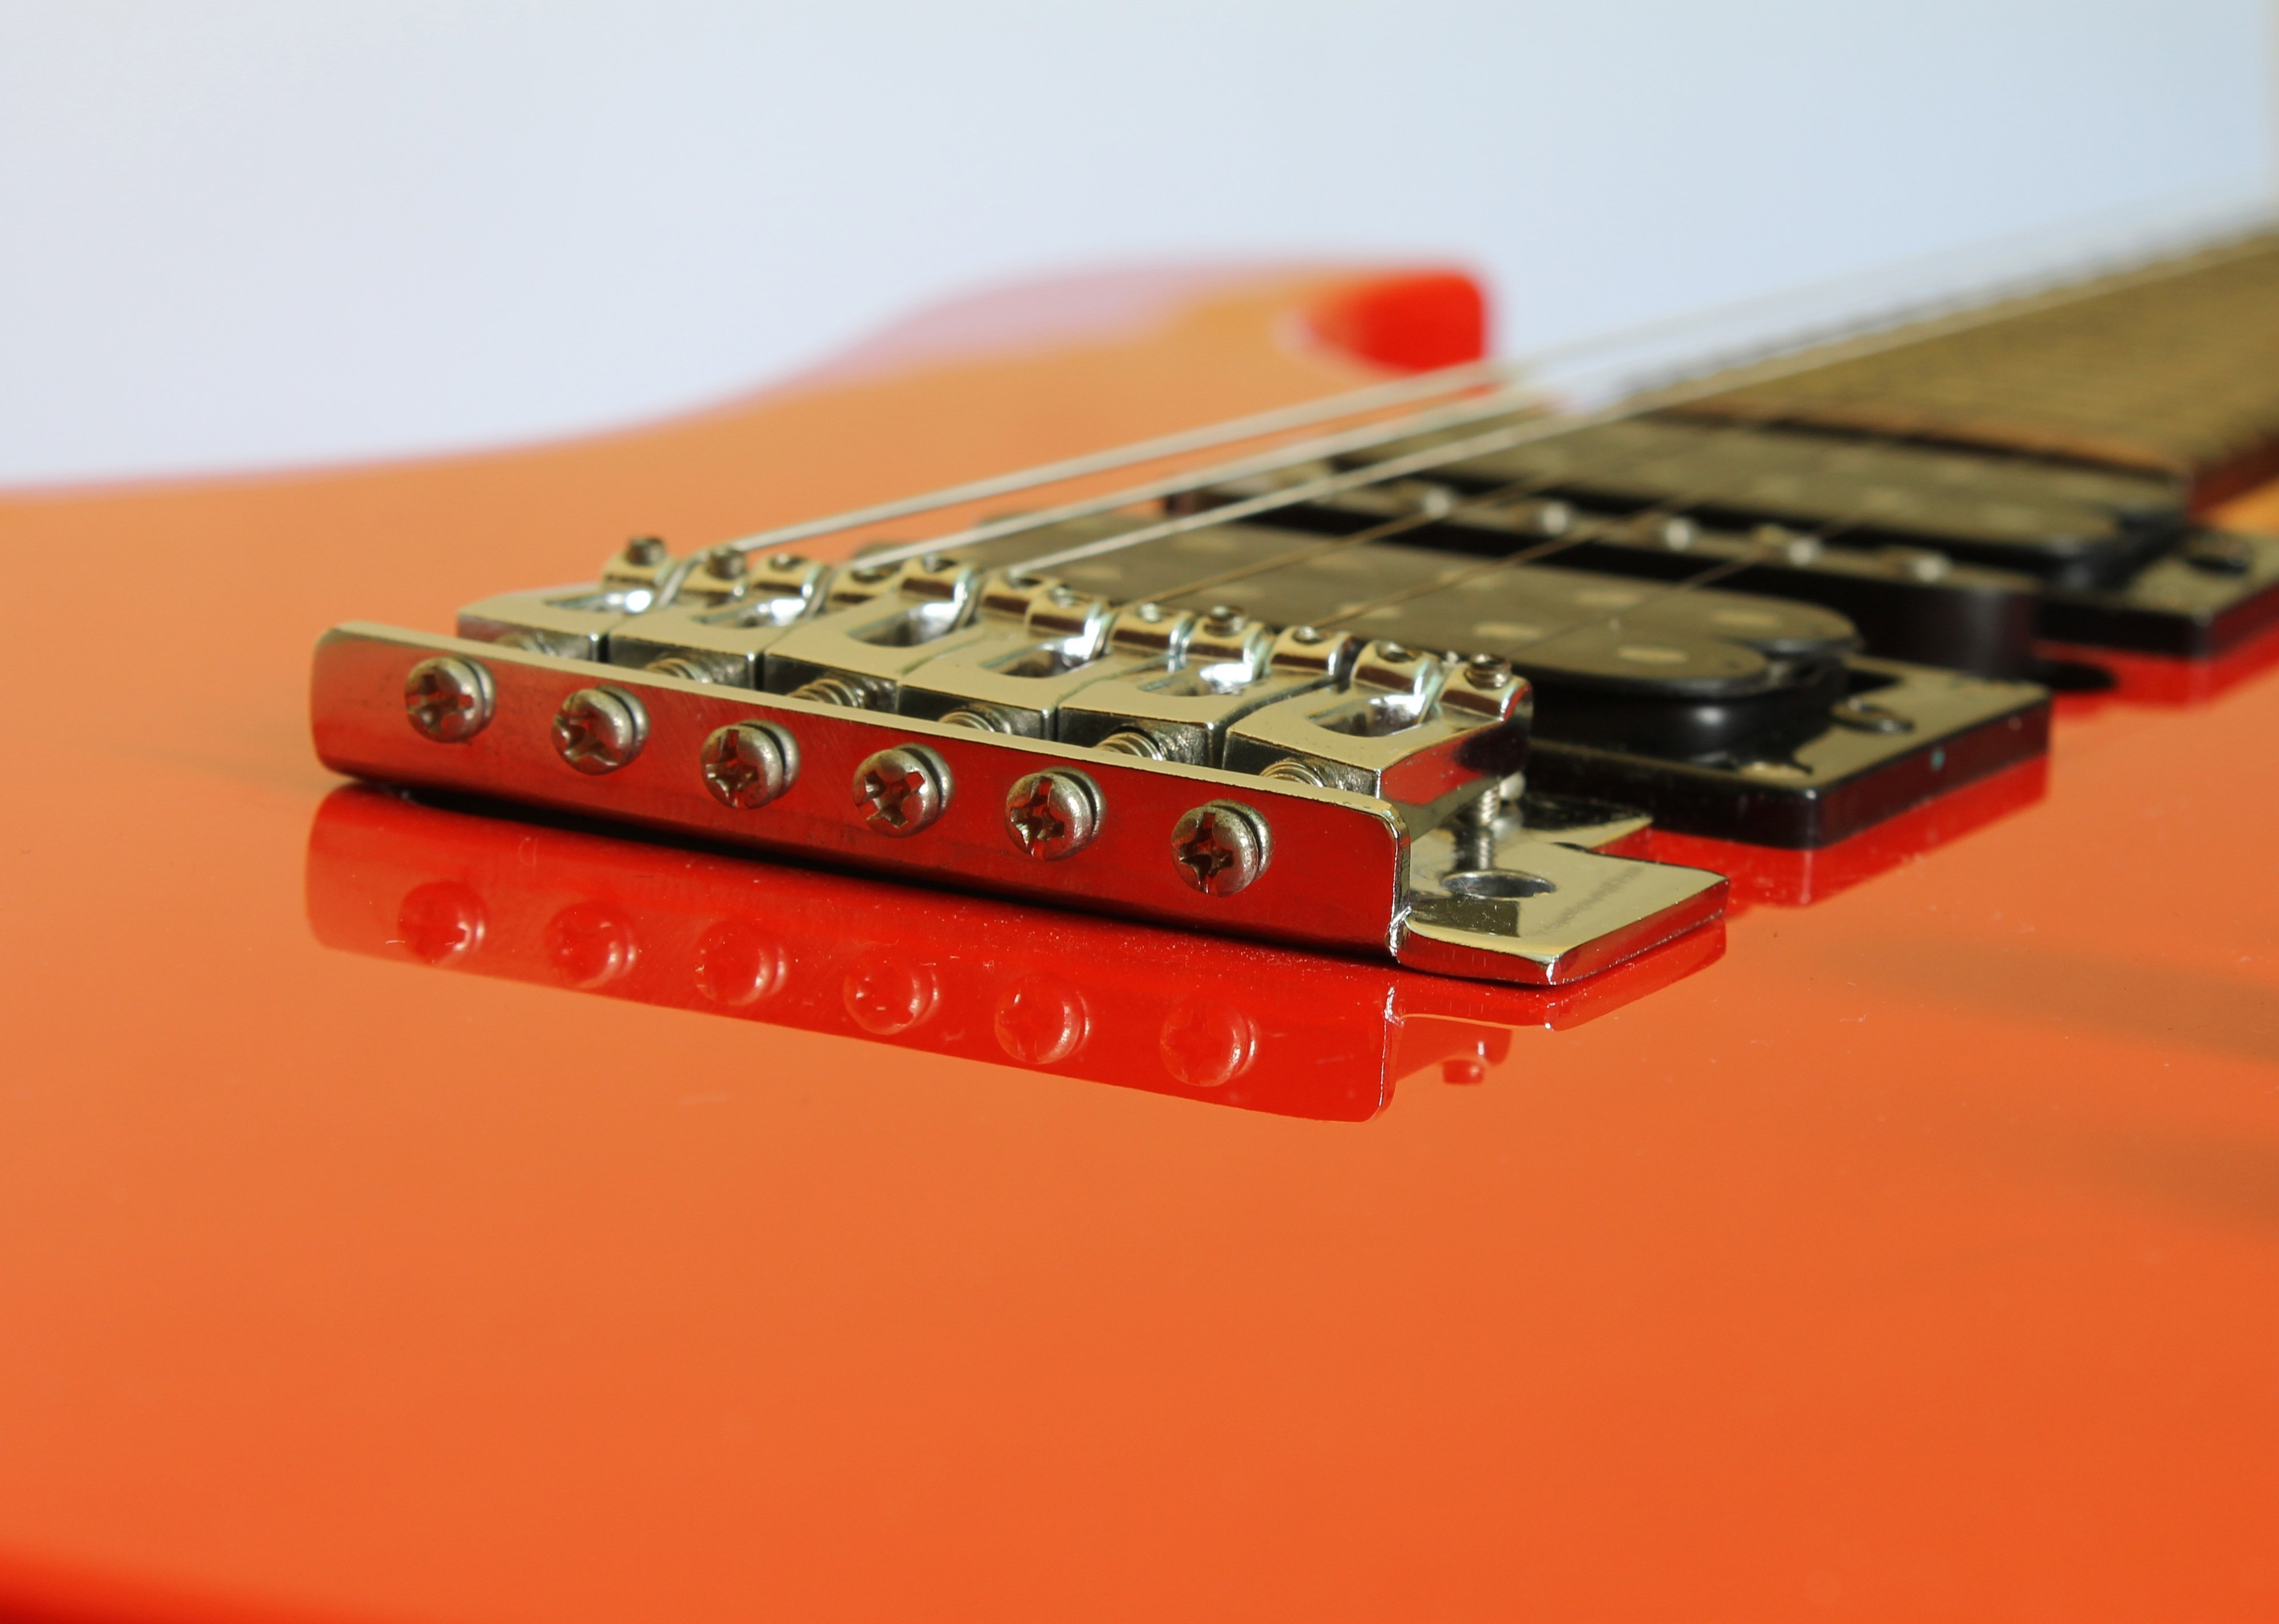 Red Shred Guitar